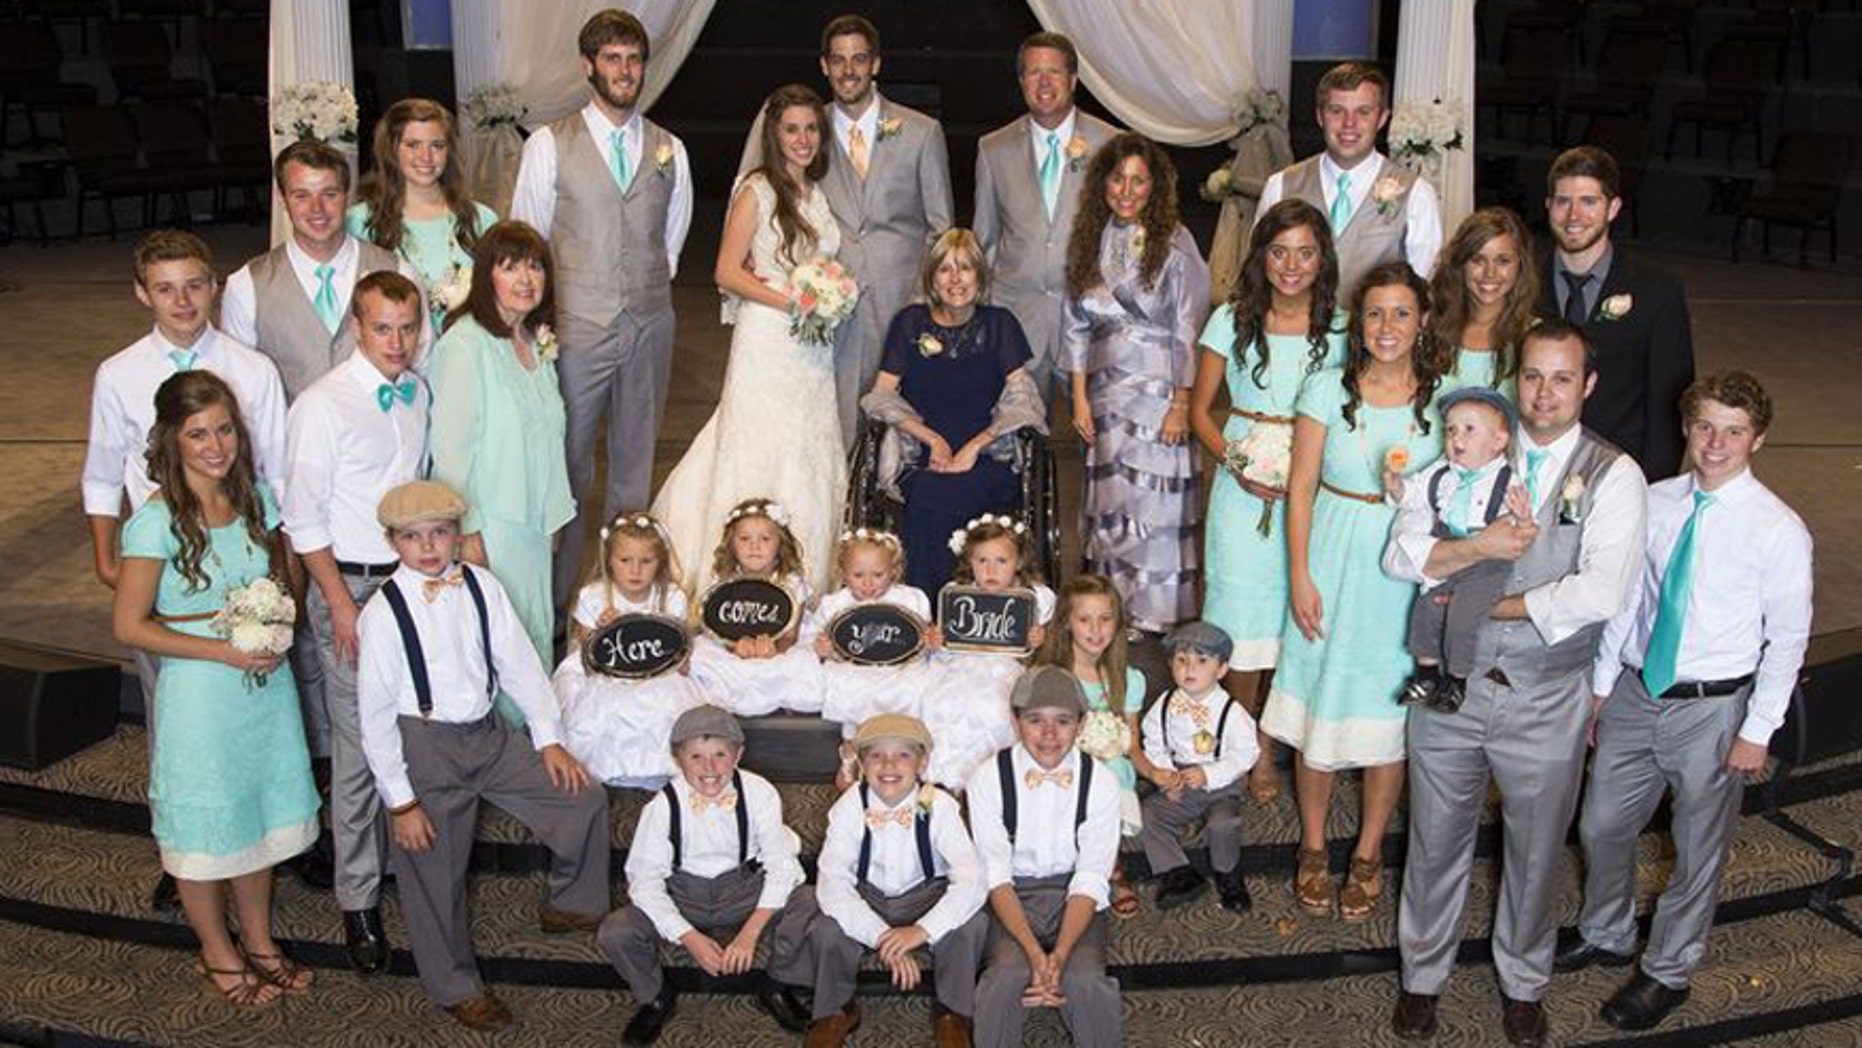 The Duggar family pose for a picture of Jill Duggar and Derick Dillard's wedding.